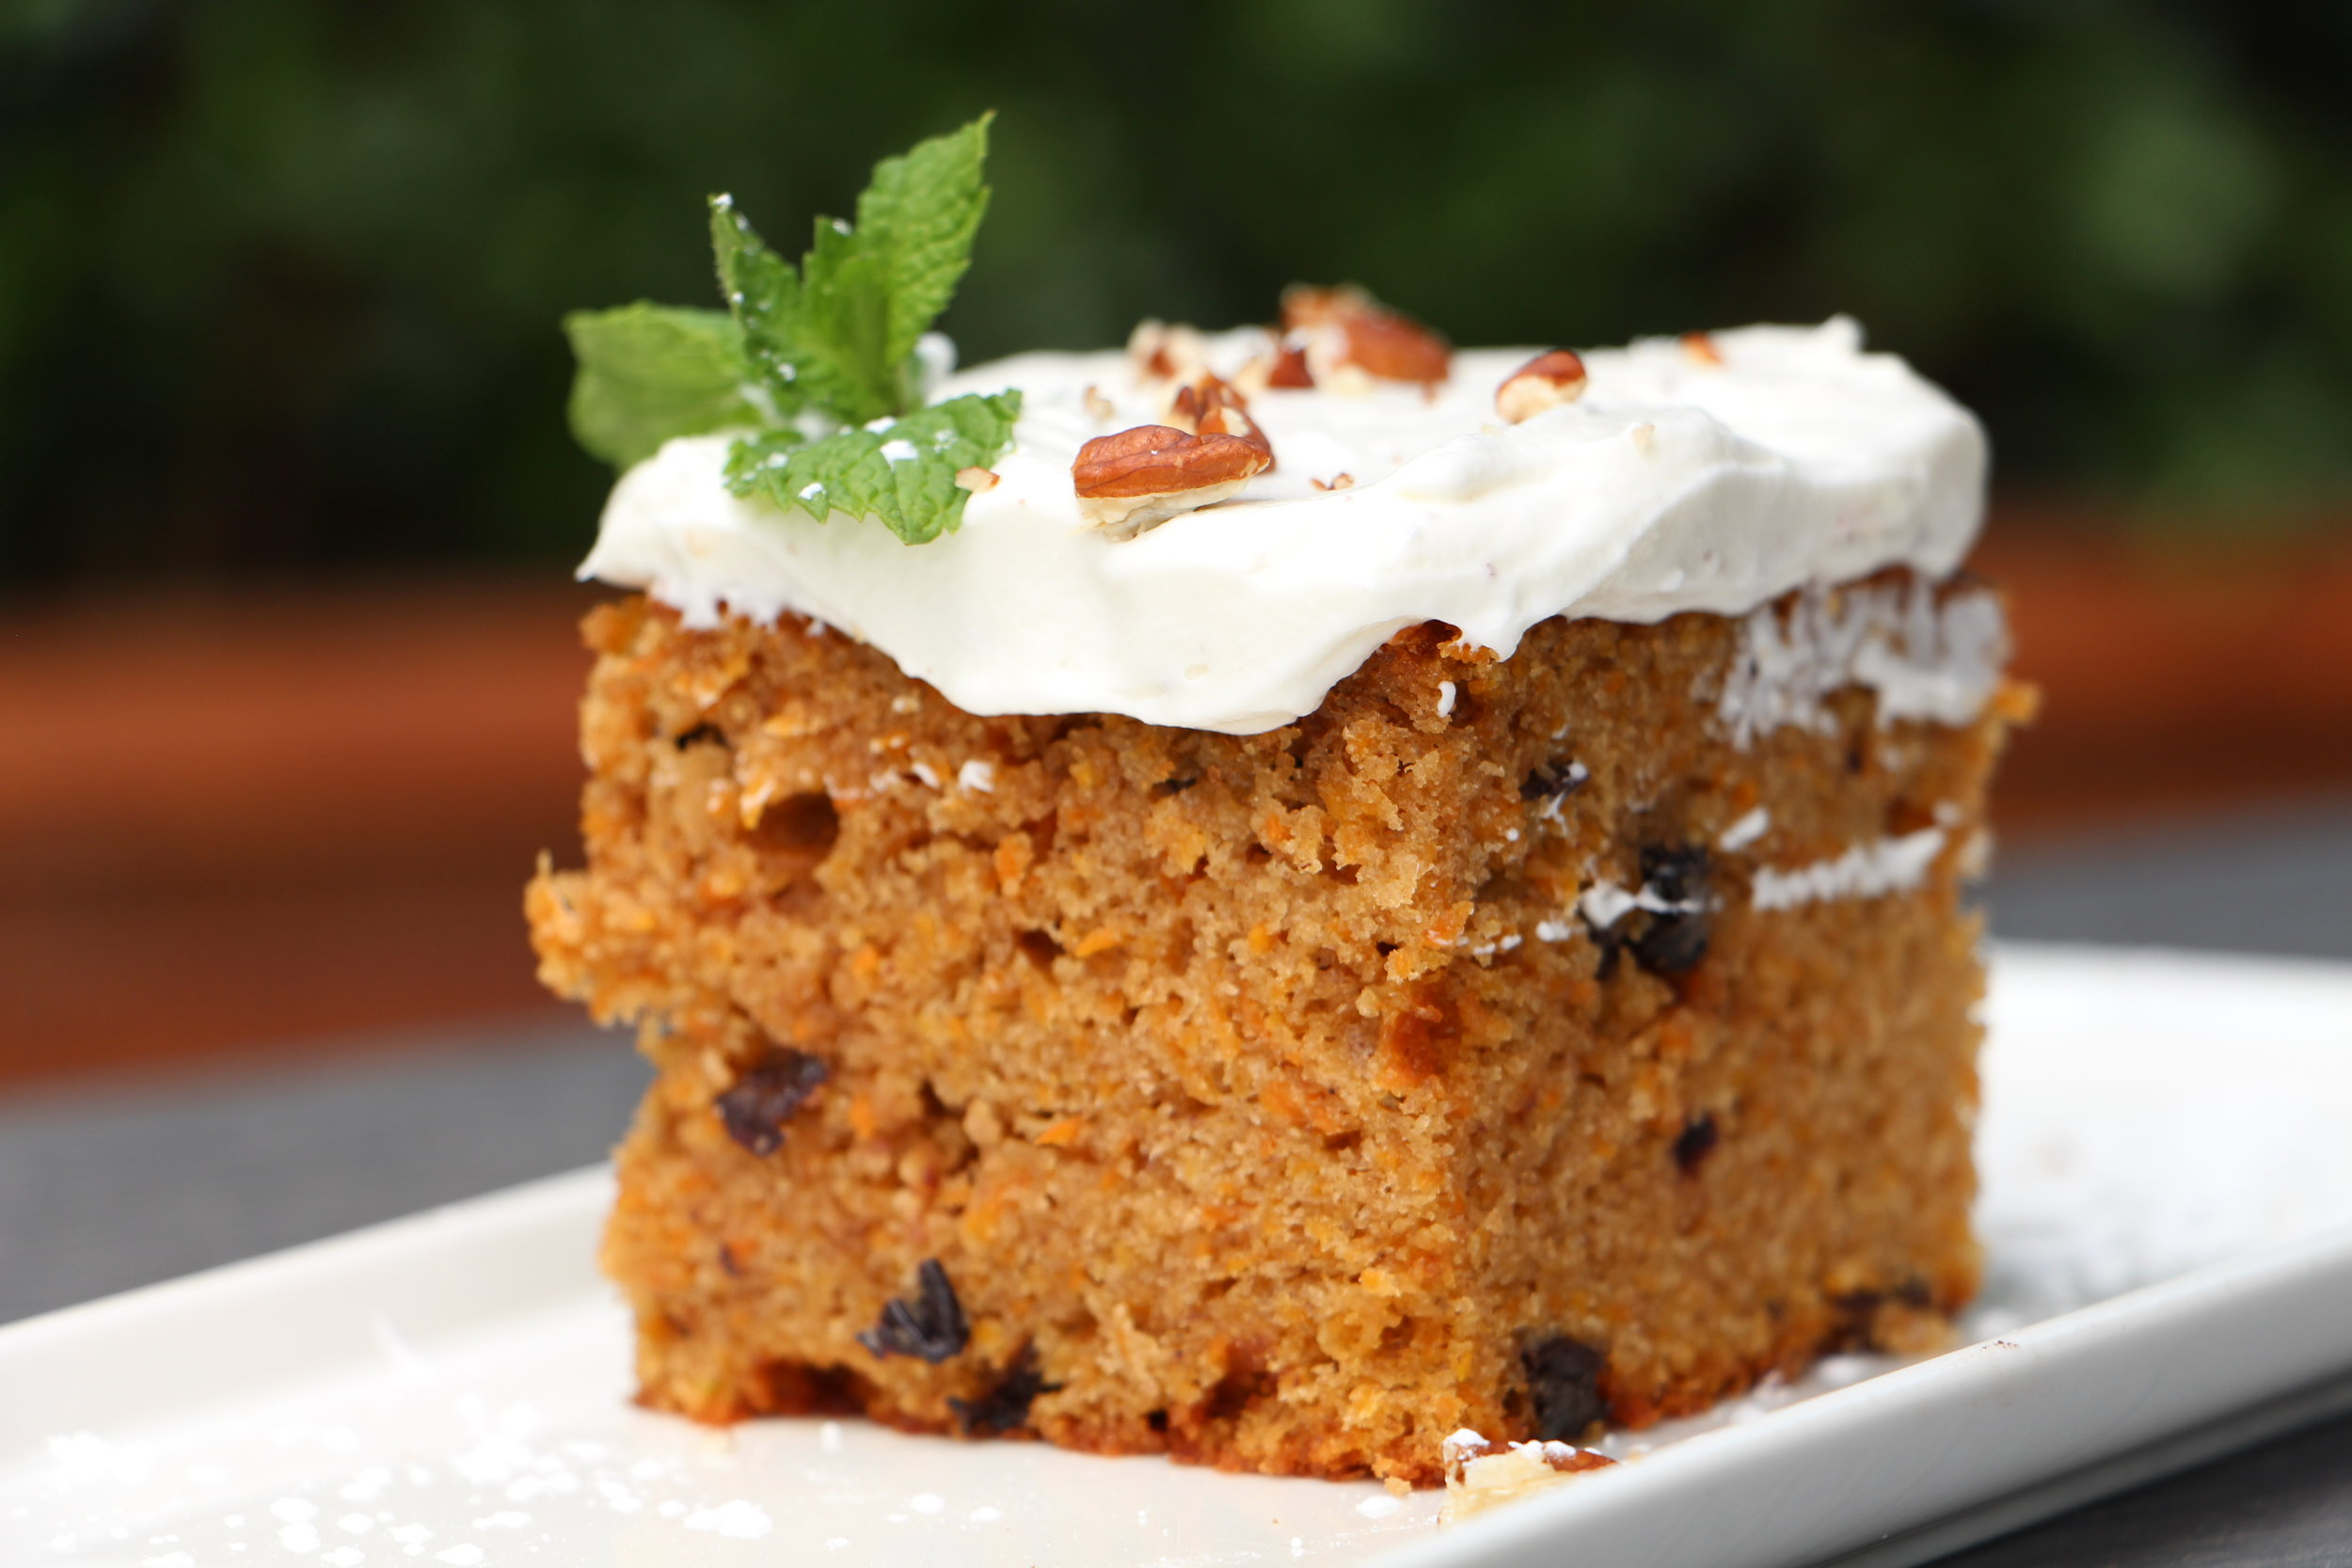 Veggies hidden in desserts are a great way to get everyone to fill their nutrient quotas, so make sure you try this sweet, moist carrot cake next time you visit the Urban Eatery.